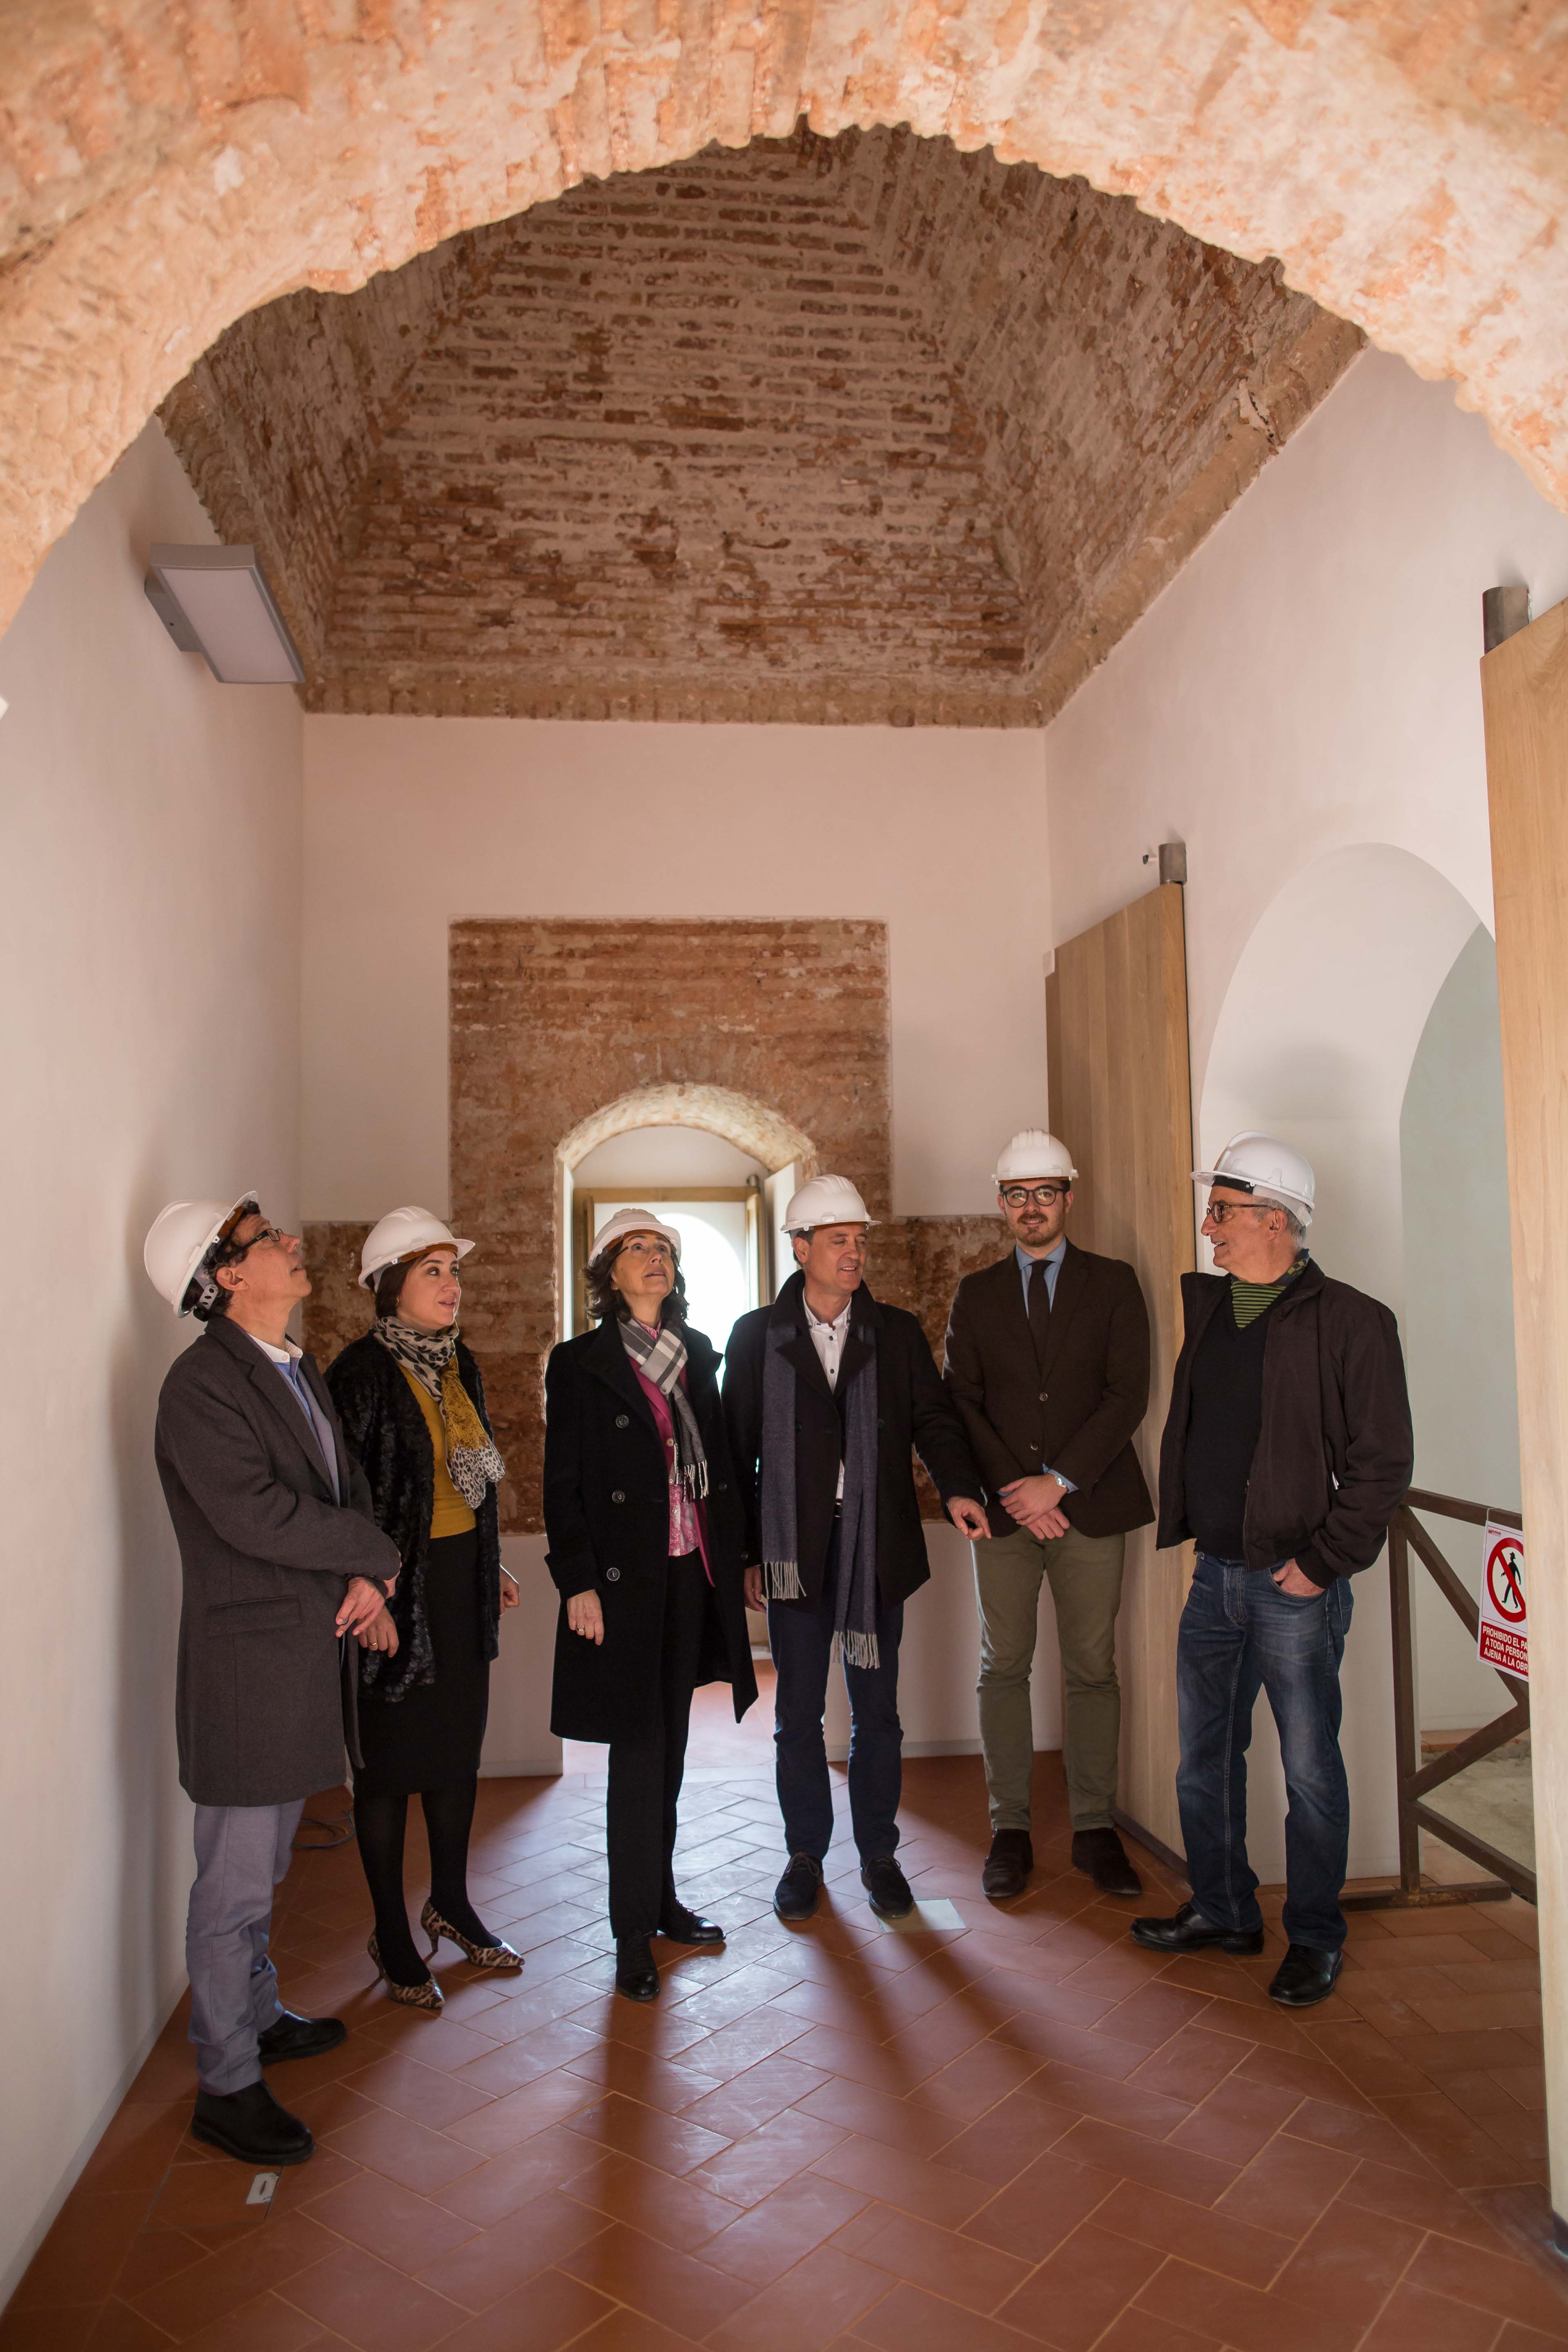 In 2015 the Alhambra achieved the best figures in its history with almost 2.5 million visitors.